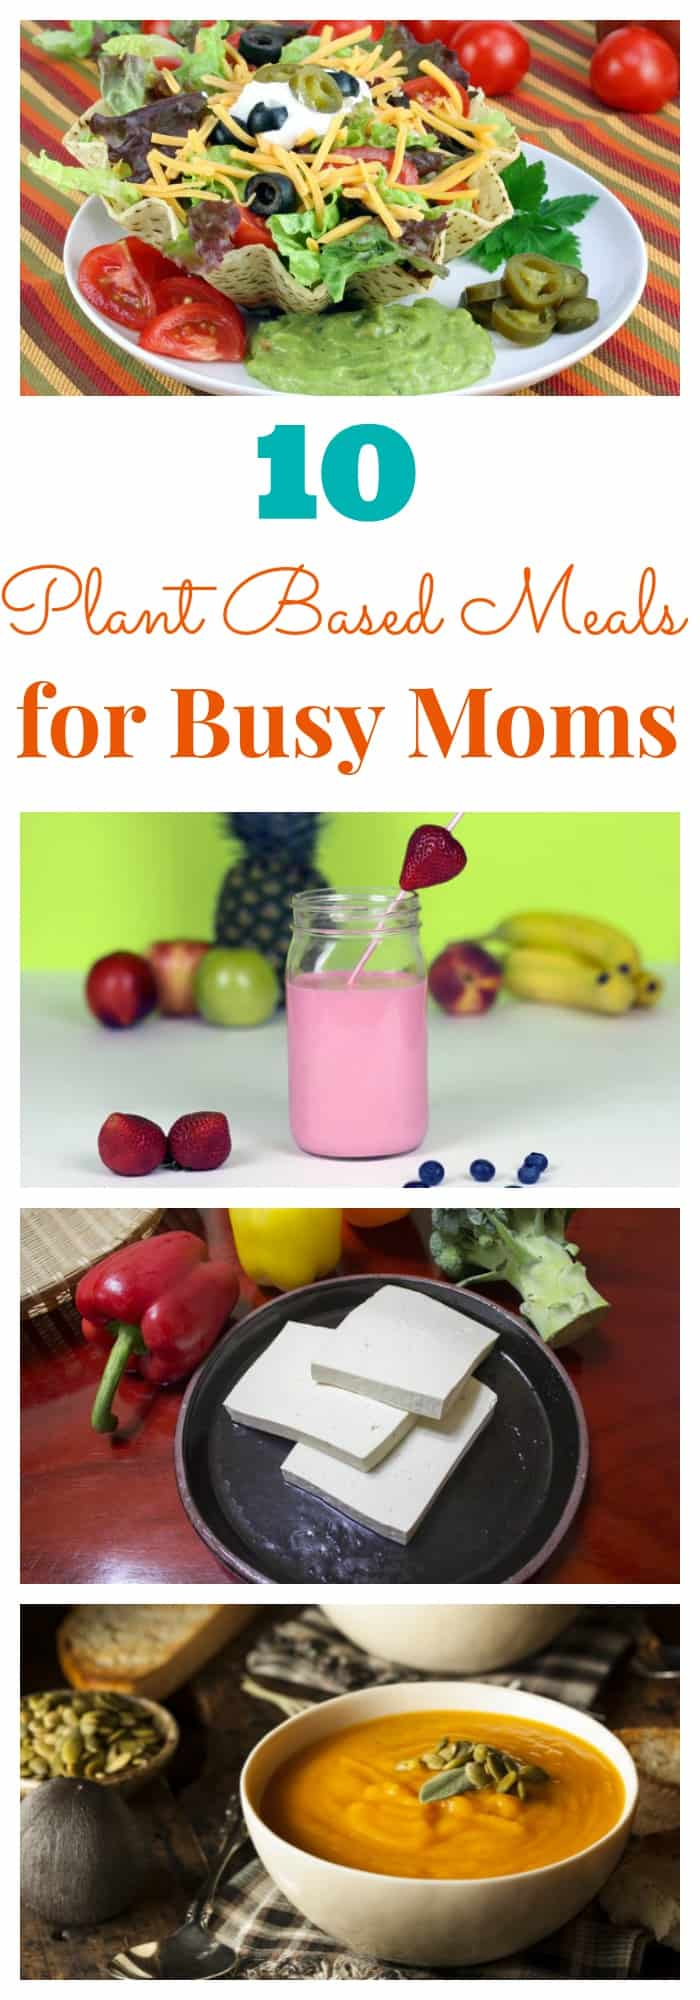 10 Plant Based Meals for Busy Moms